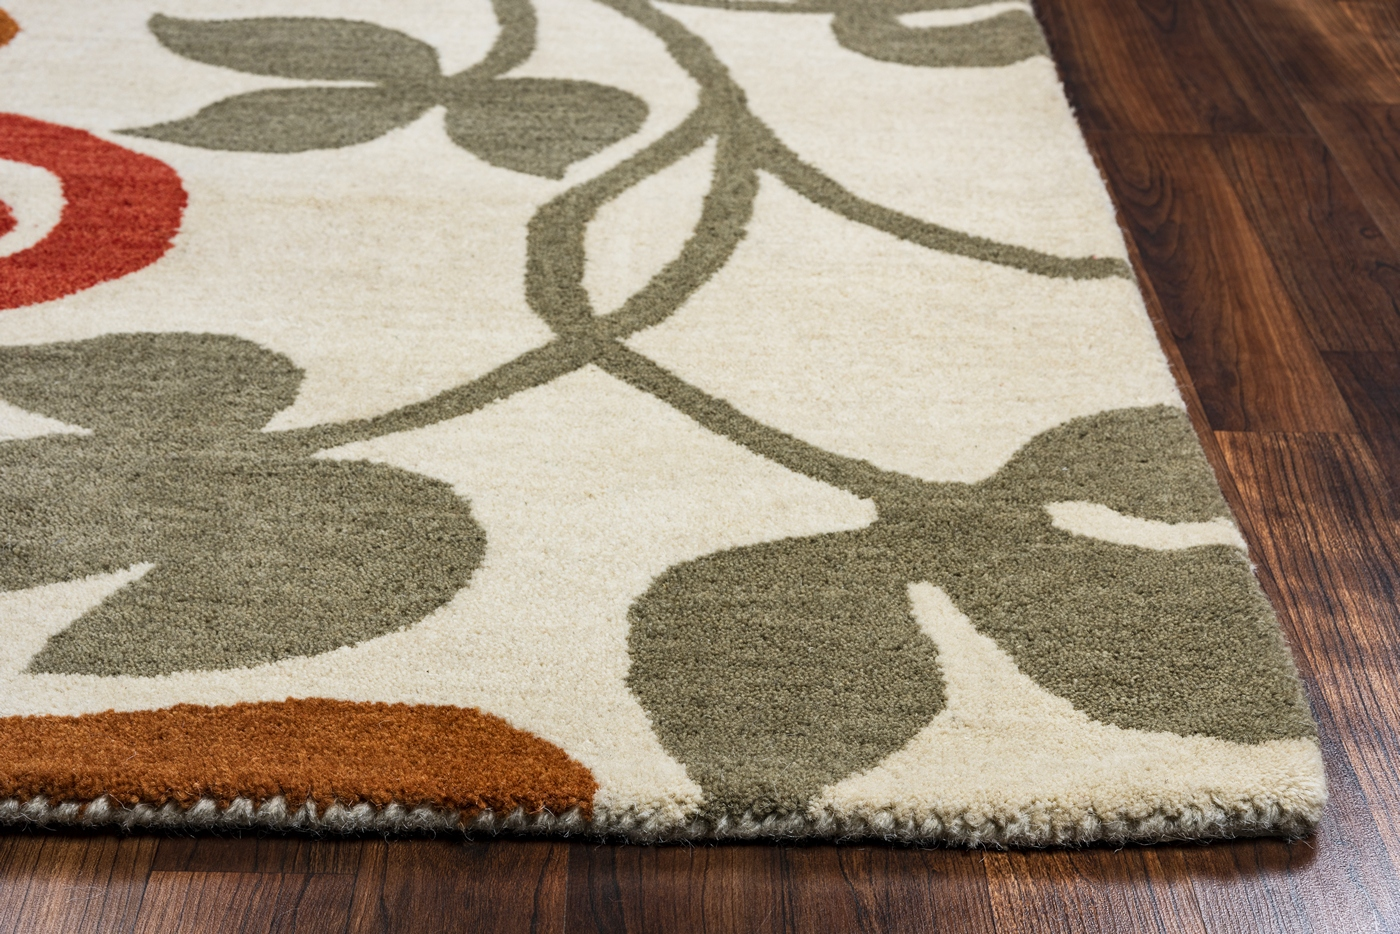 Marianna Fields Floral Wool Area Rug In Grey Blue Brown